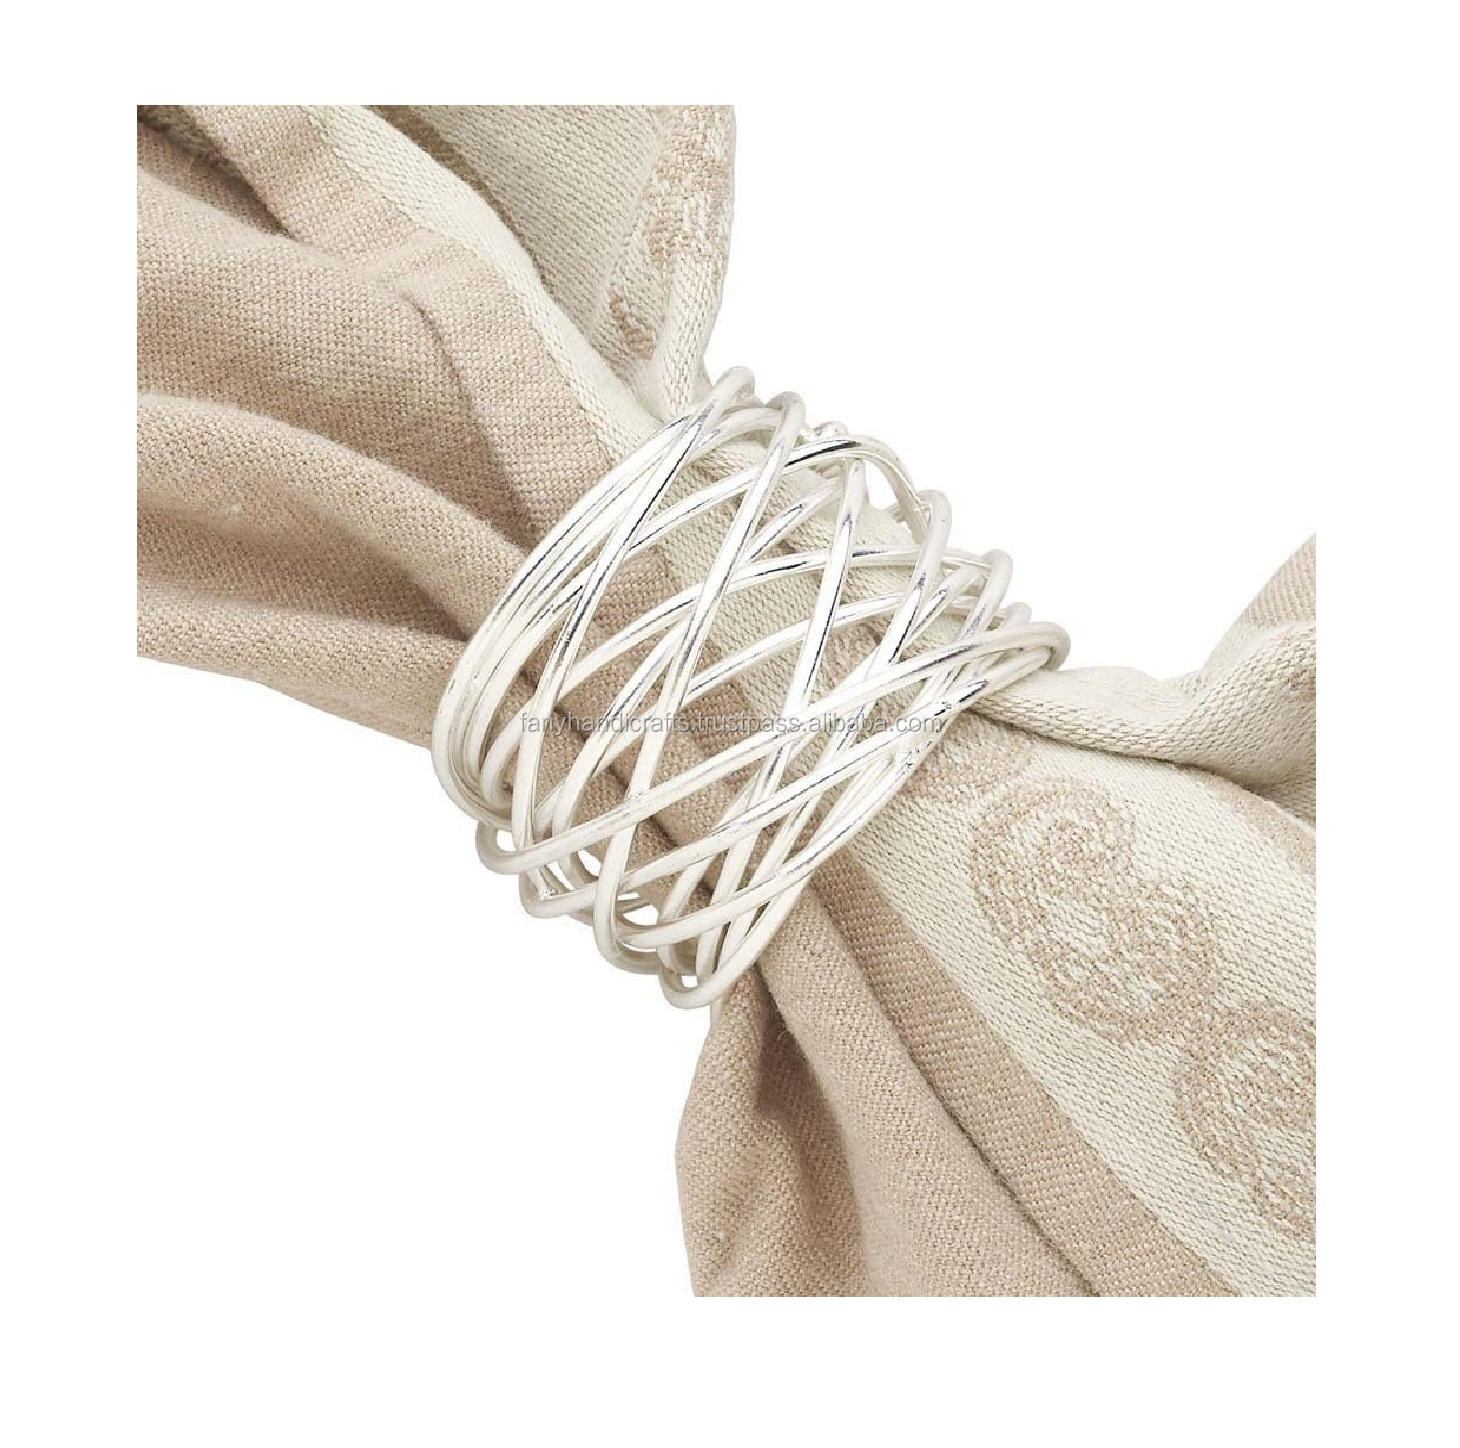 Latest Design Napkin Ring Wire For Wedding